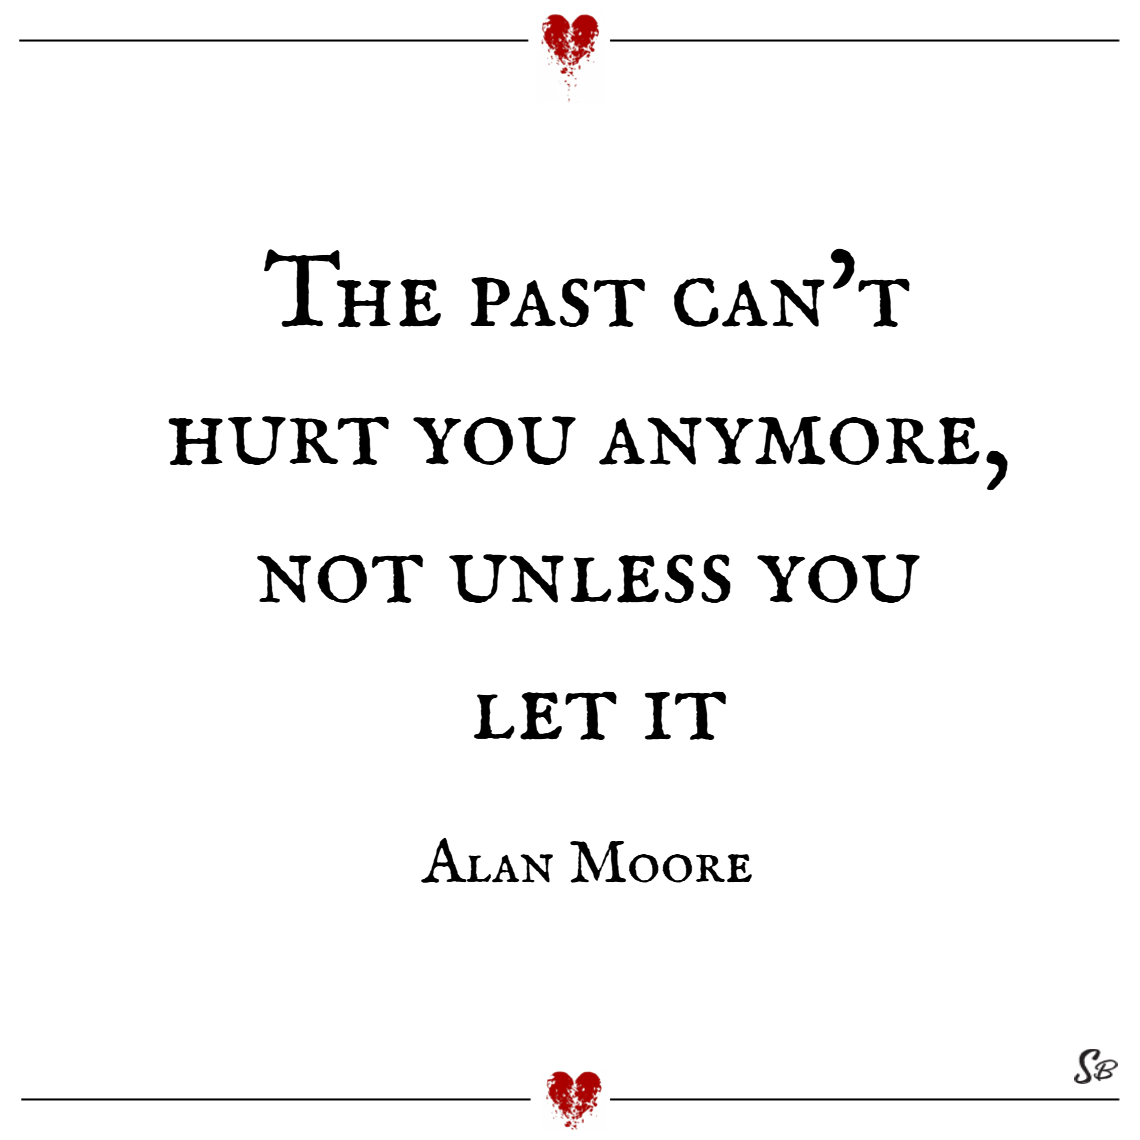 The past can't hurt you anymore, not unless you let it. – alan moore